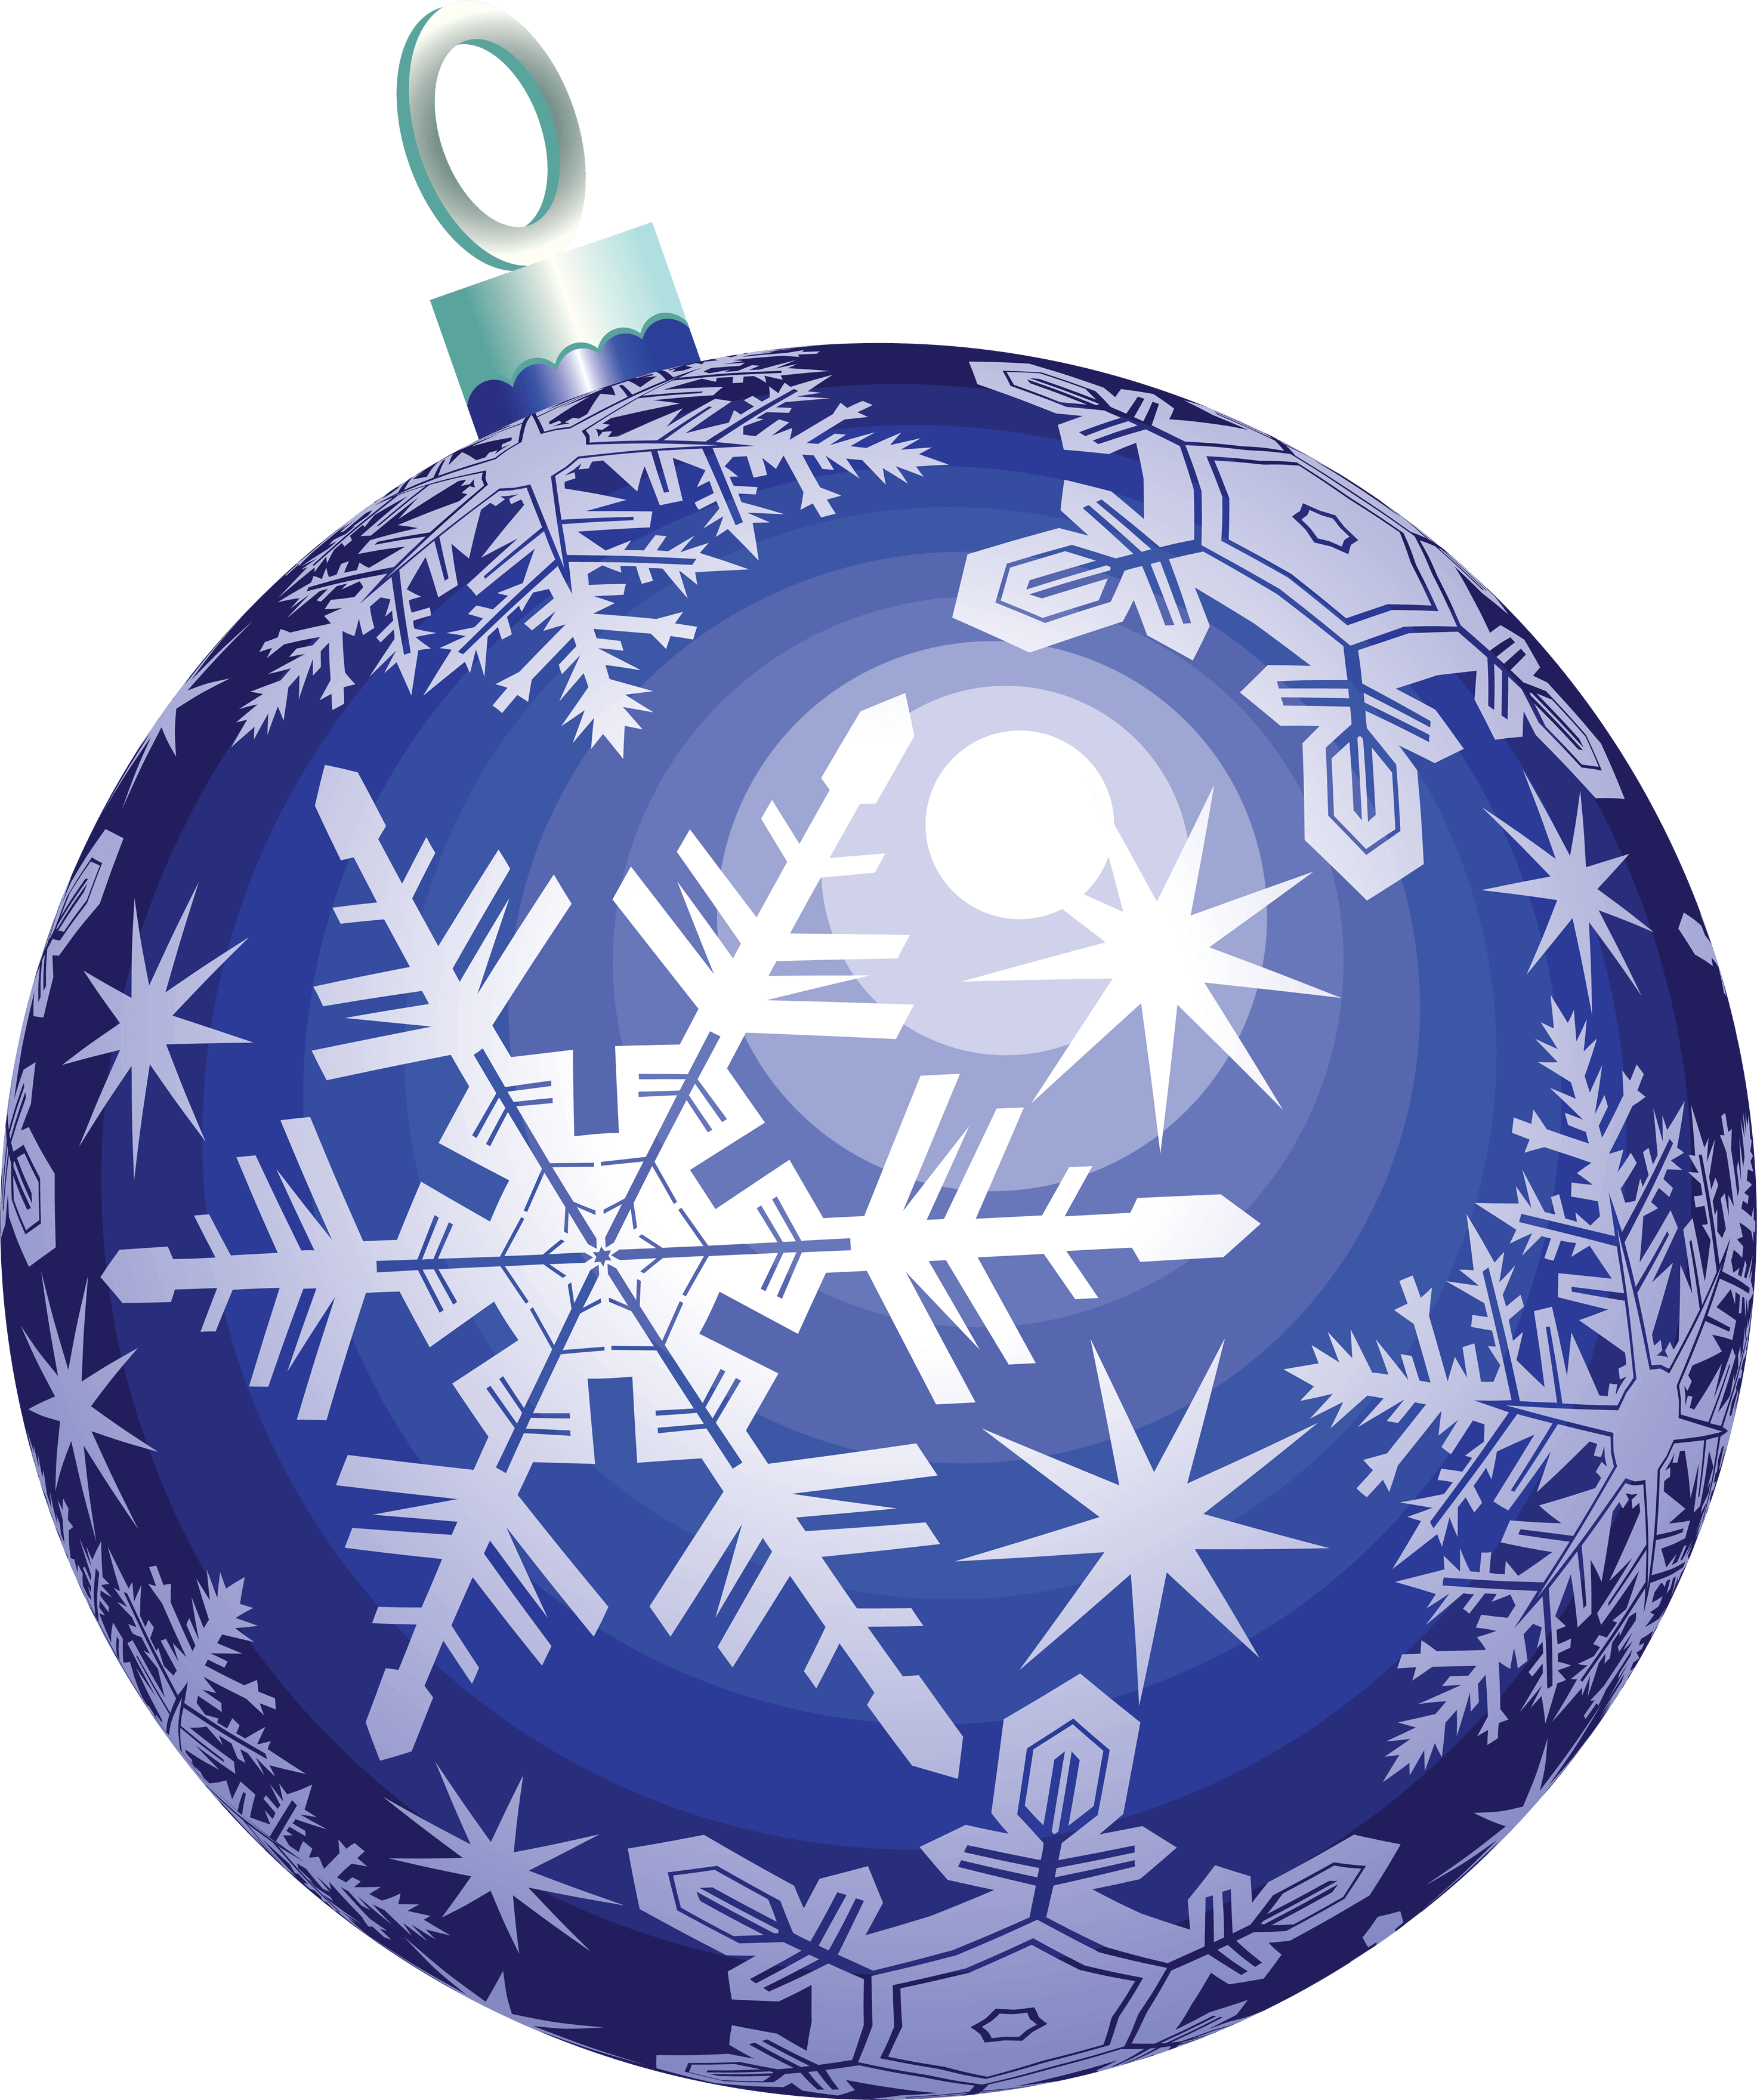 christmas ball flake toy png image